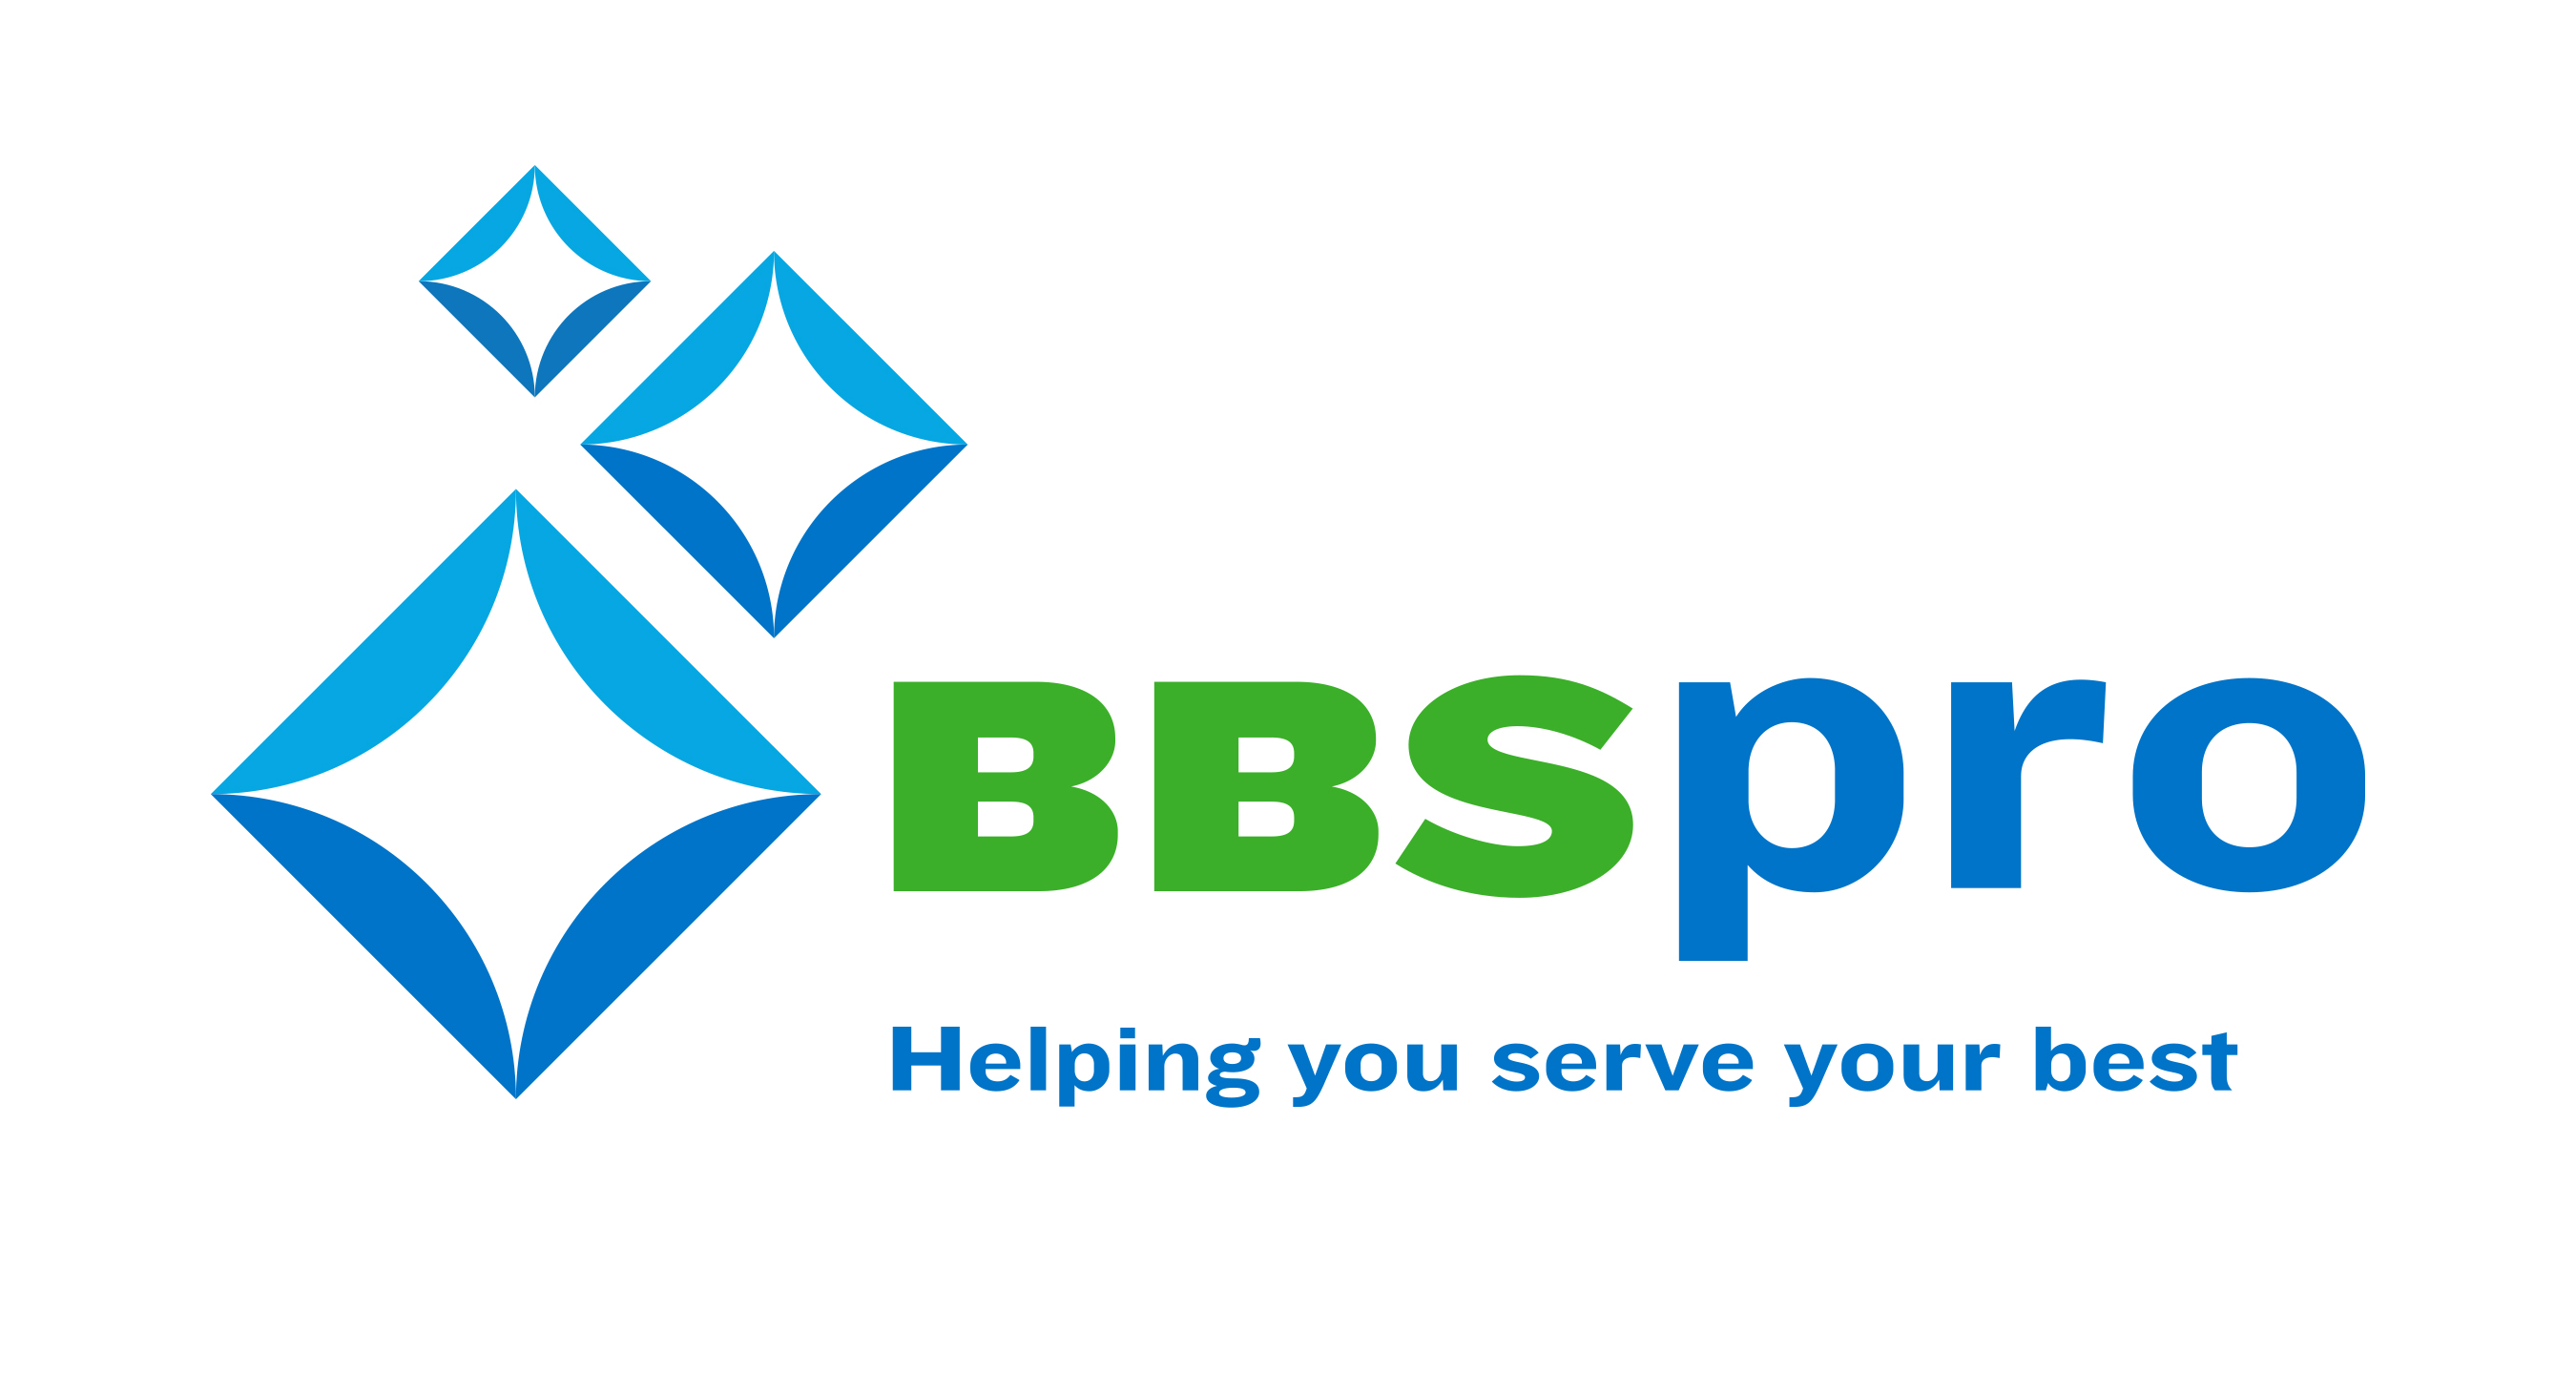 BBSpro Services